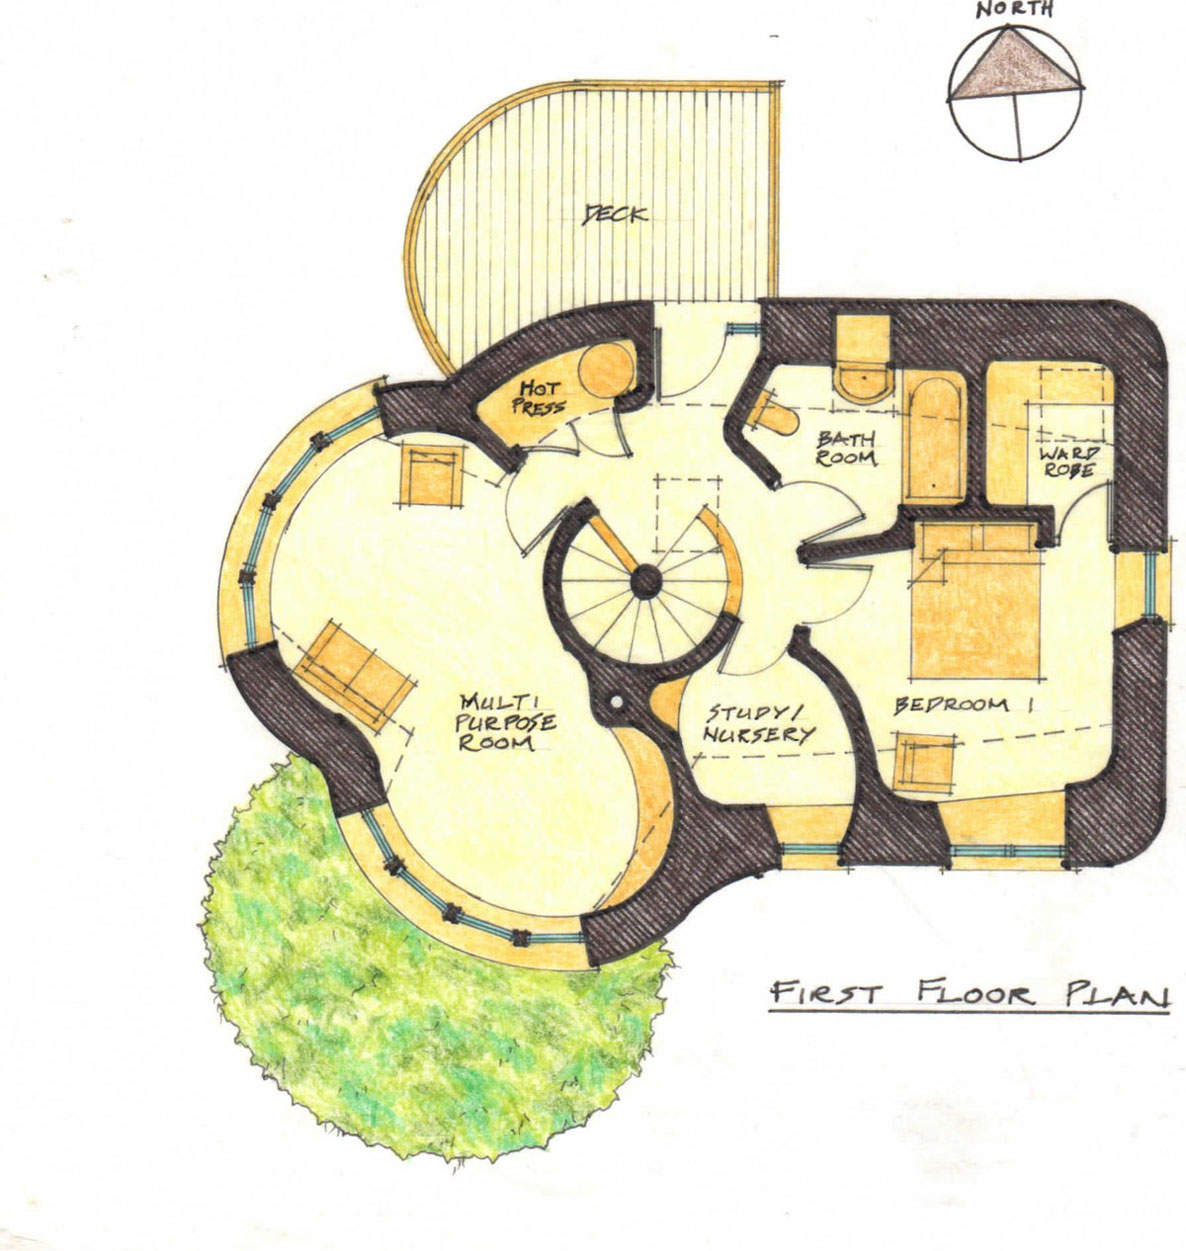 Sick cob house plans off grid pinterest floor for House construction plans